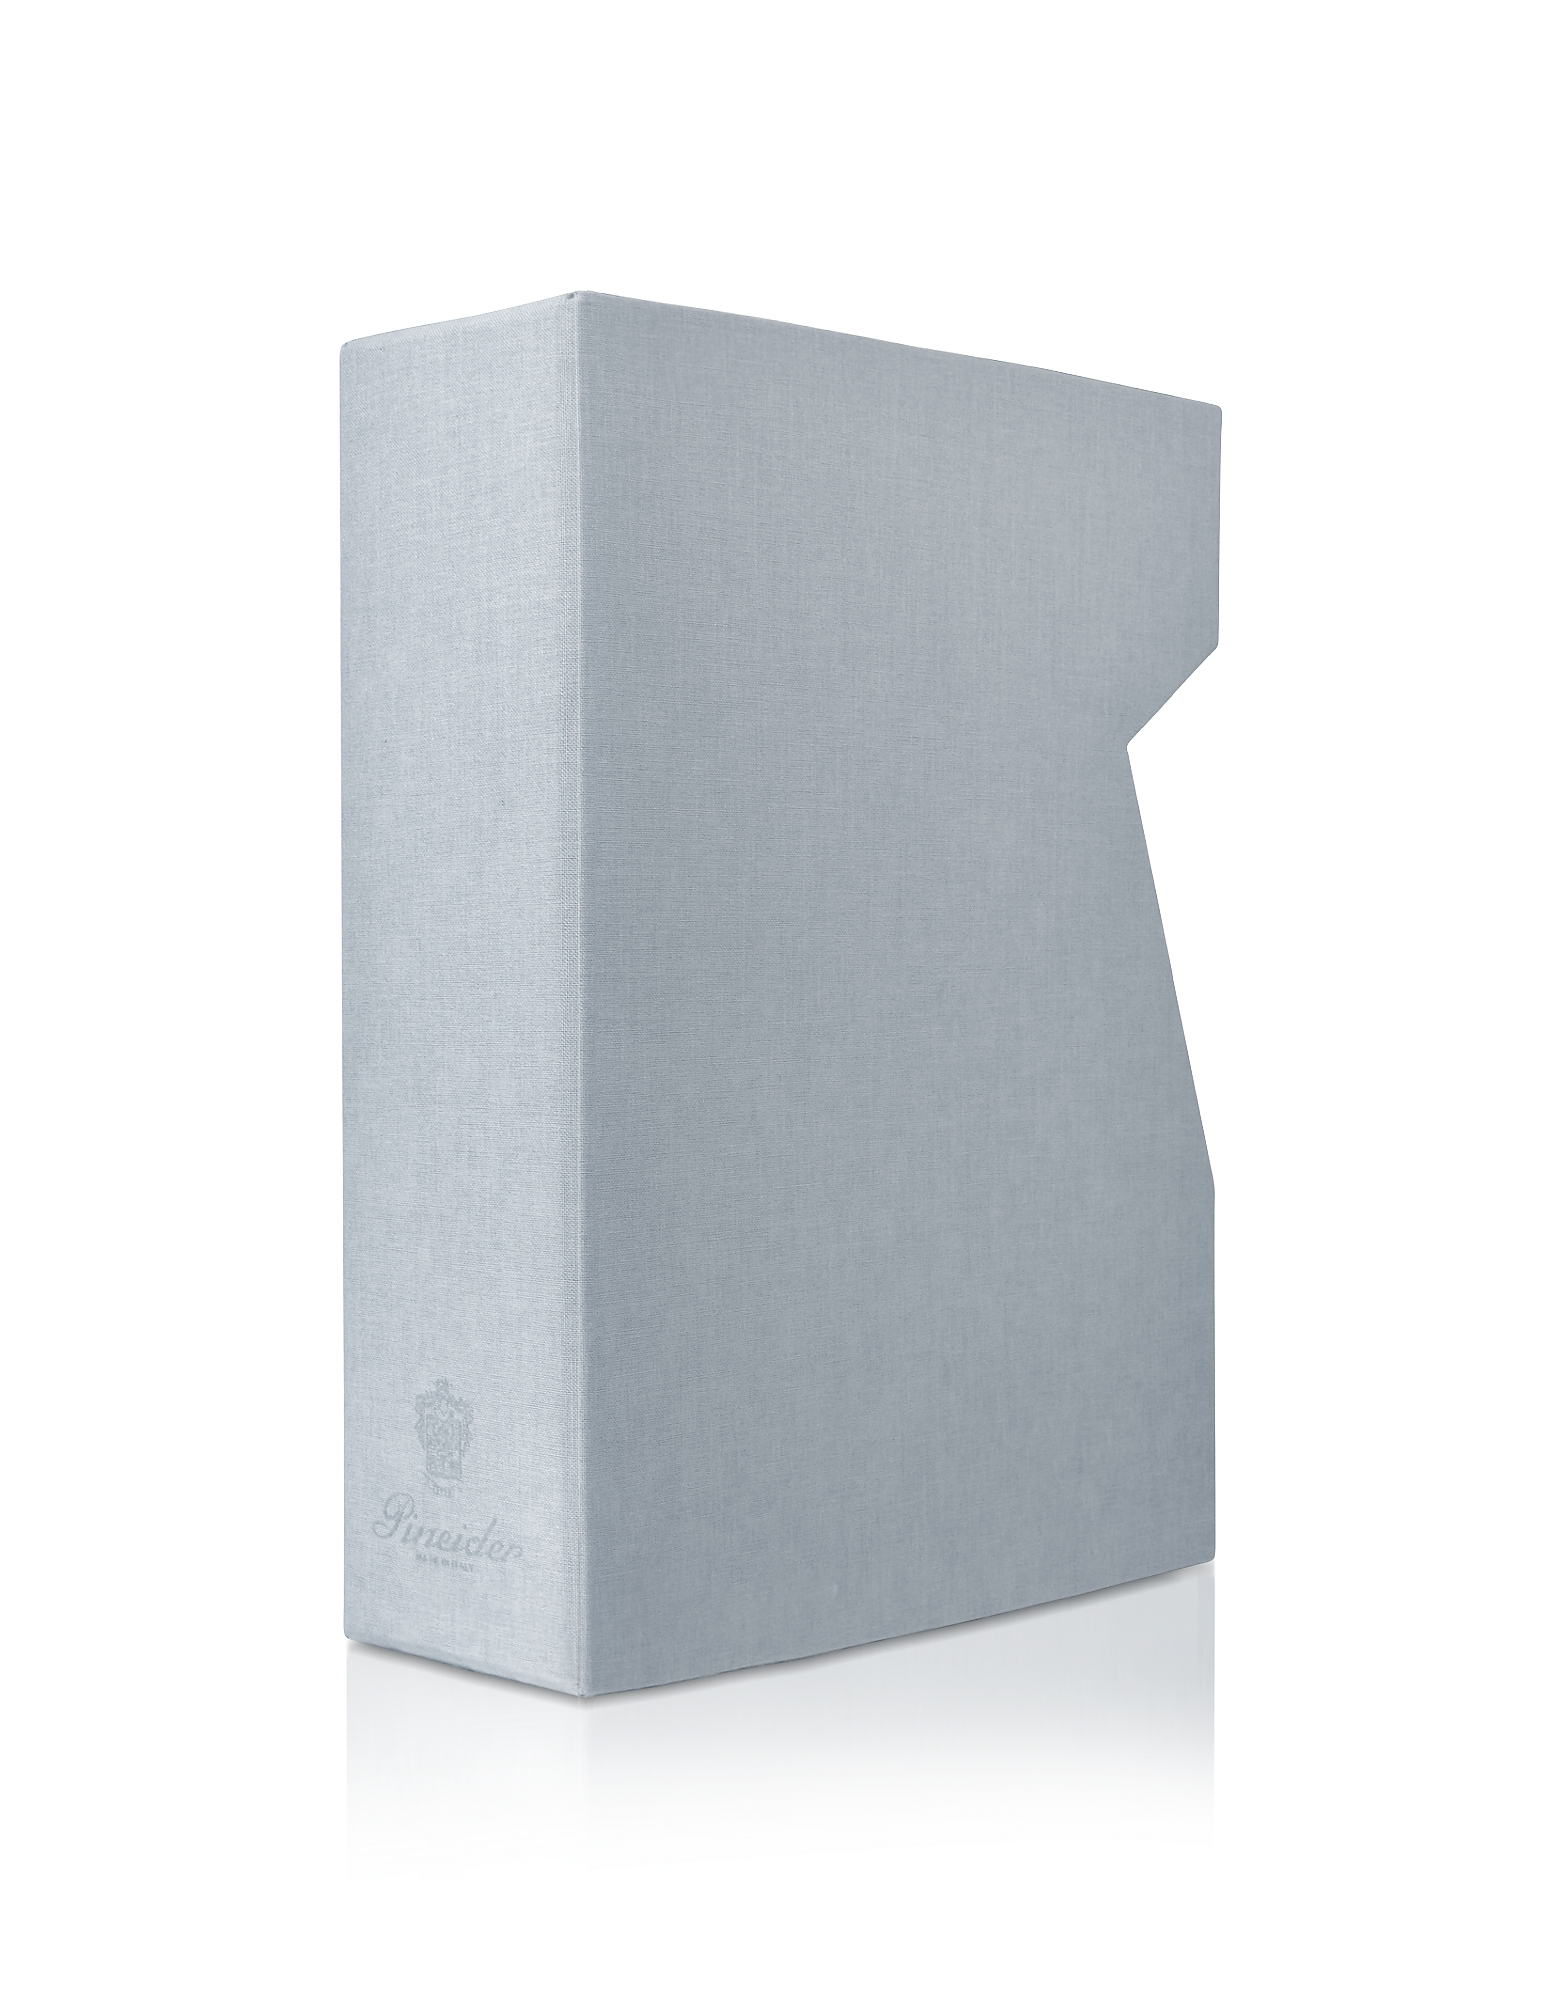 Power Elegance - Stone Gray Medium Photo Album Case